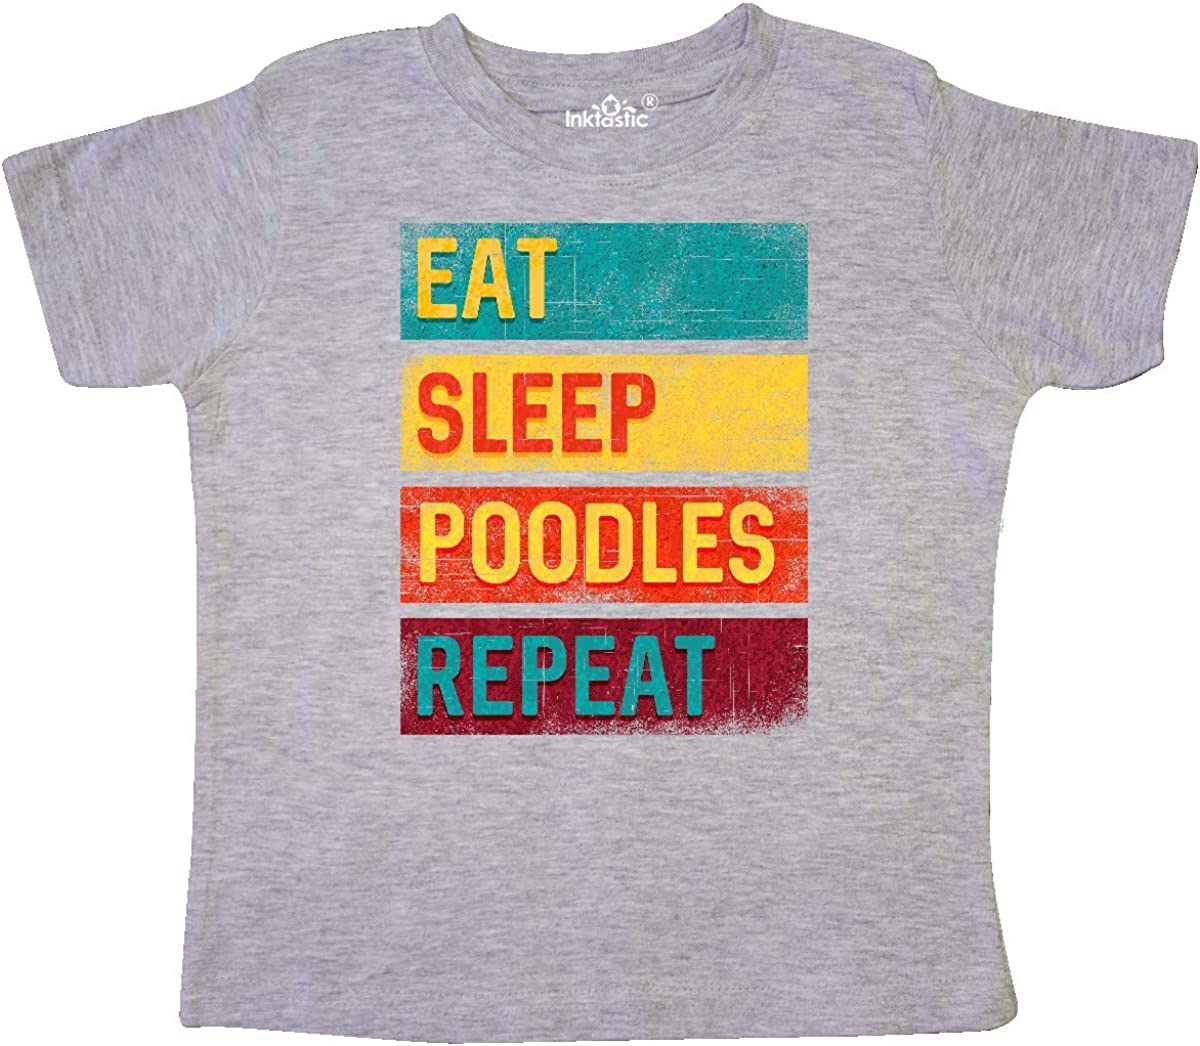 inktastic Poodle Lover Eat Sleep Poodles Repeat Toddler T-Shirt